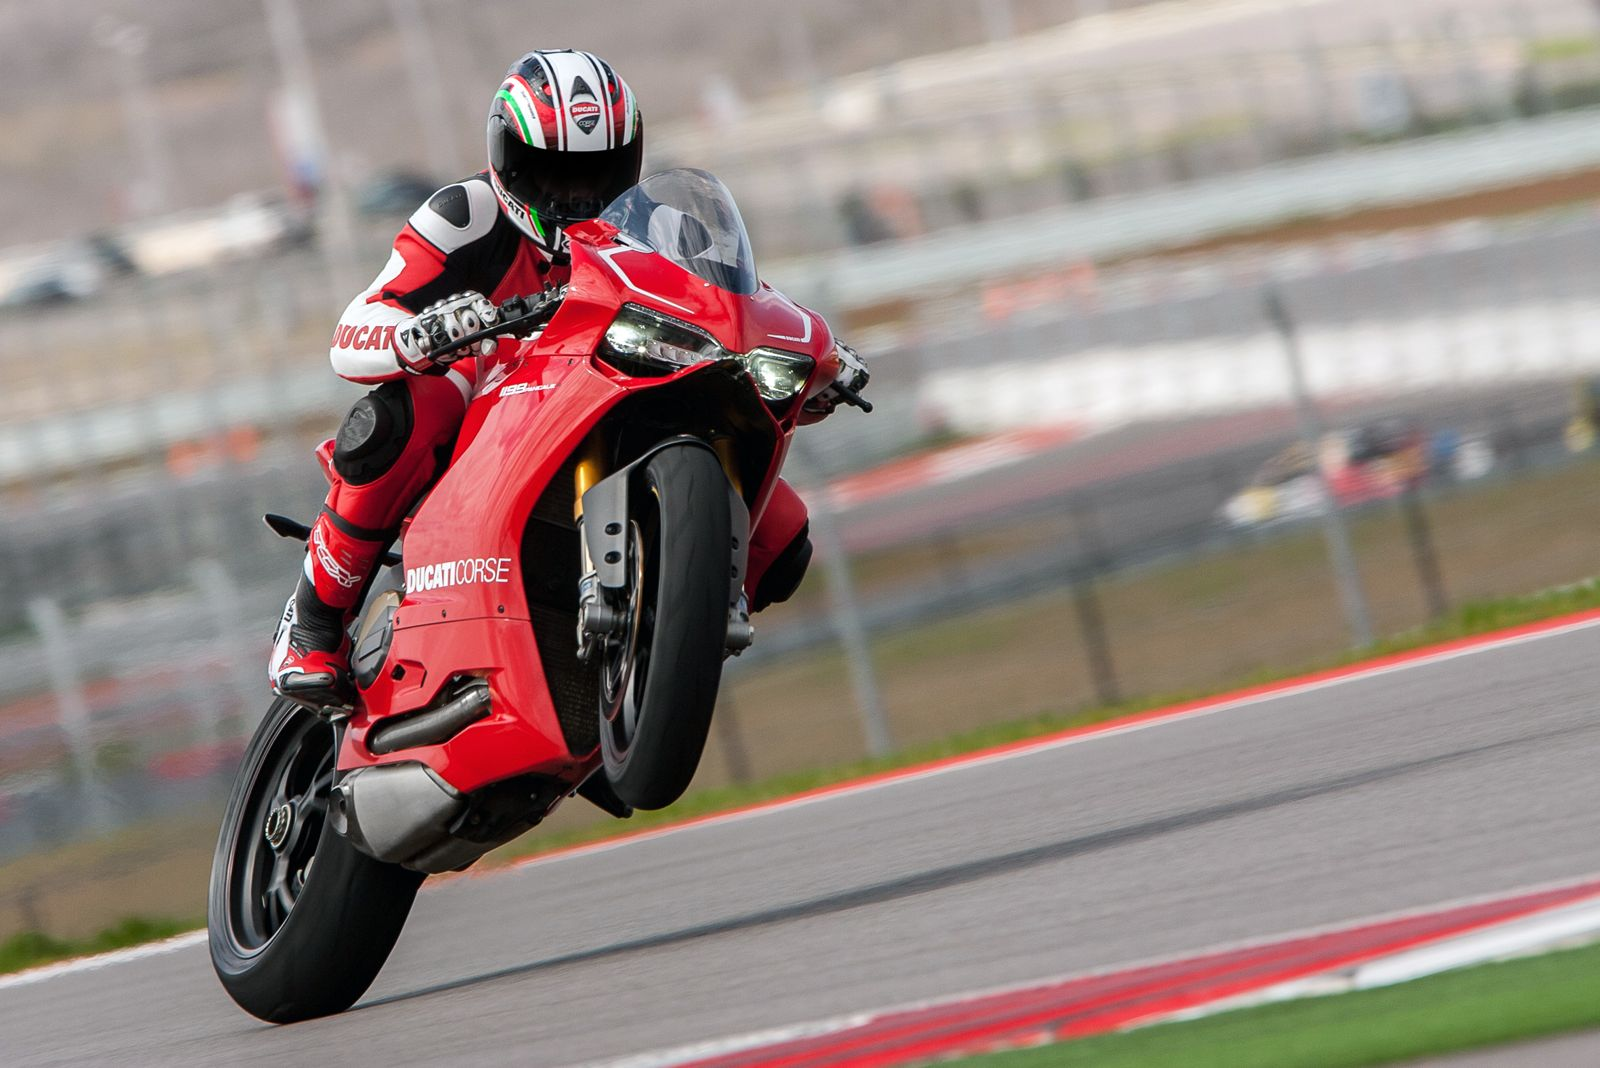 2013-motogp-ducati-anticipates-the-cota-round-58071_1